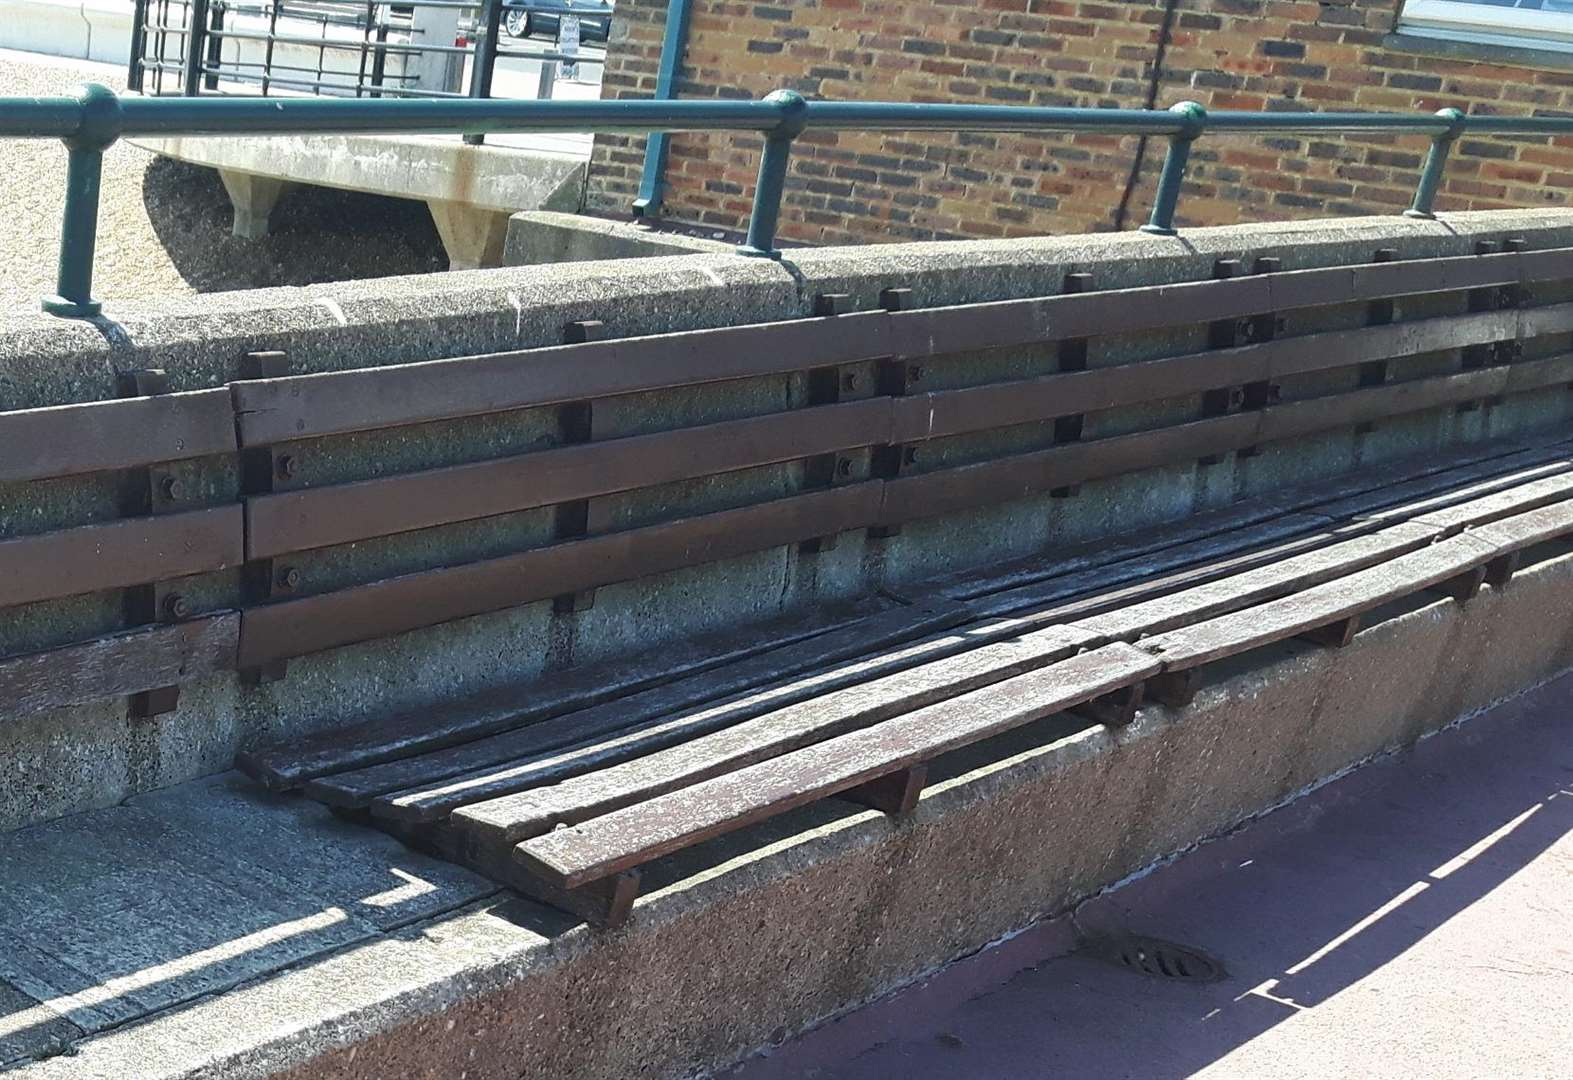 Landmark's old bench timbers available for upcycling